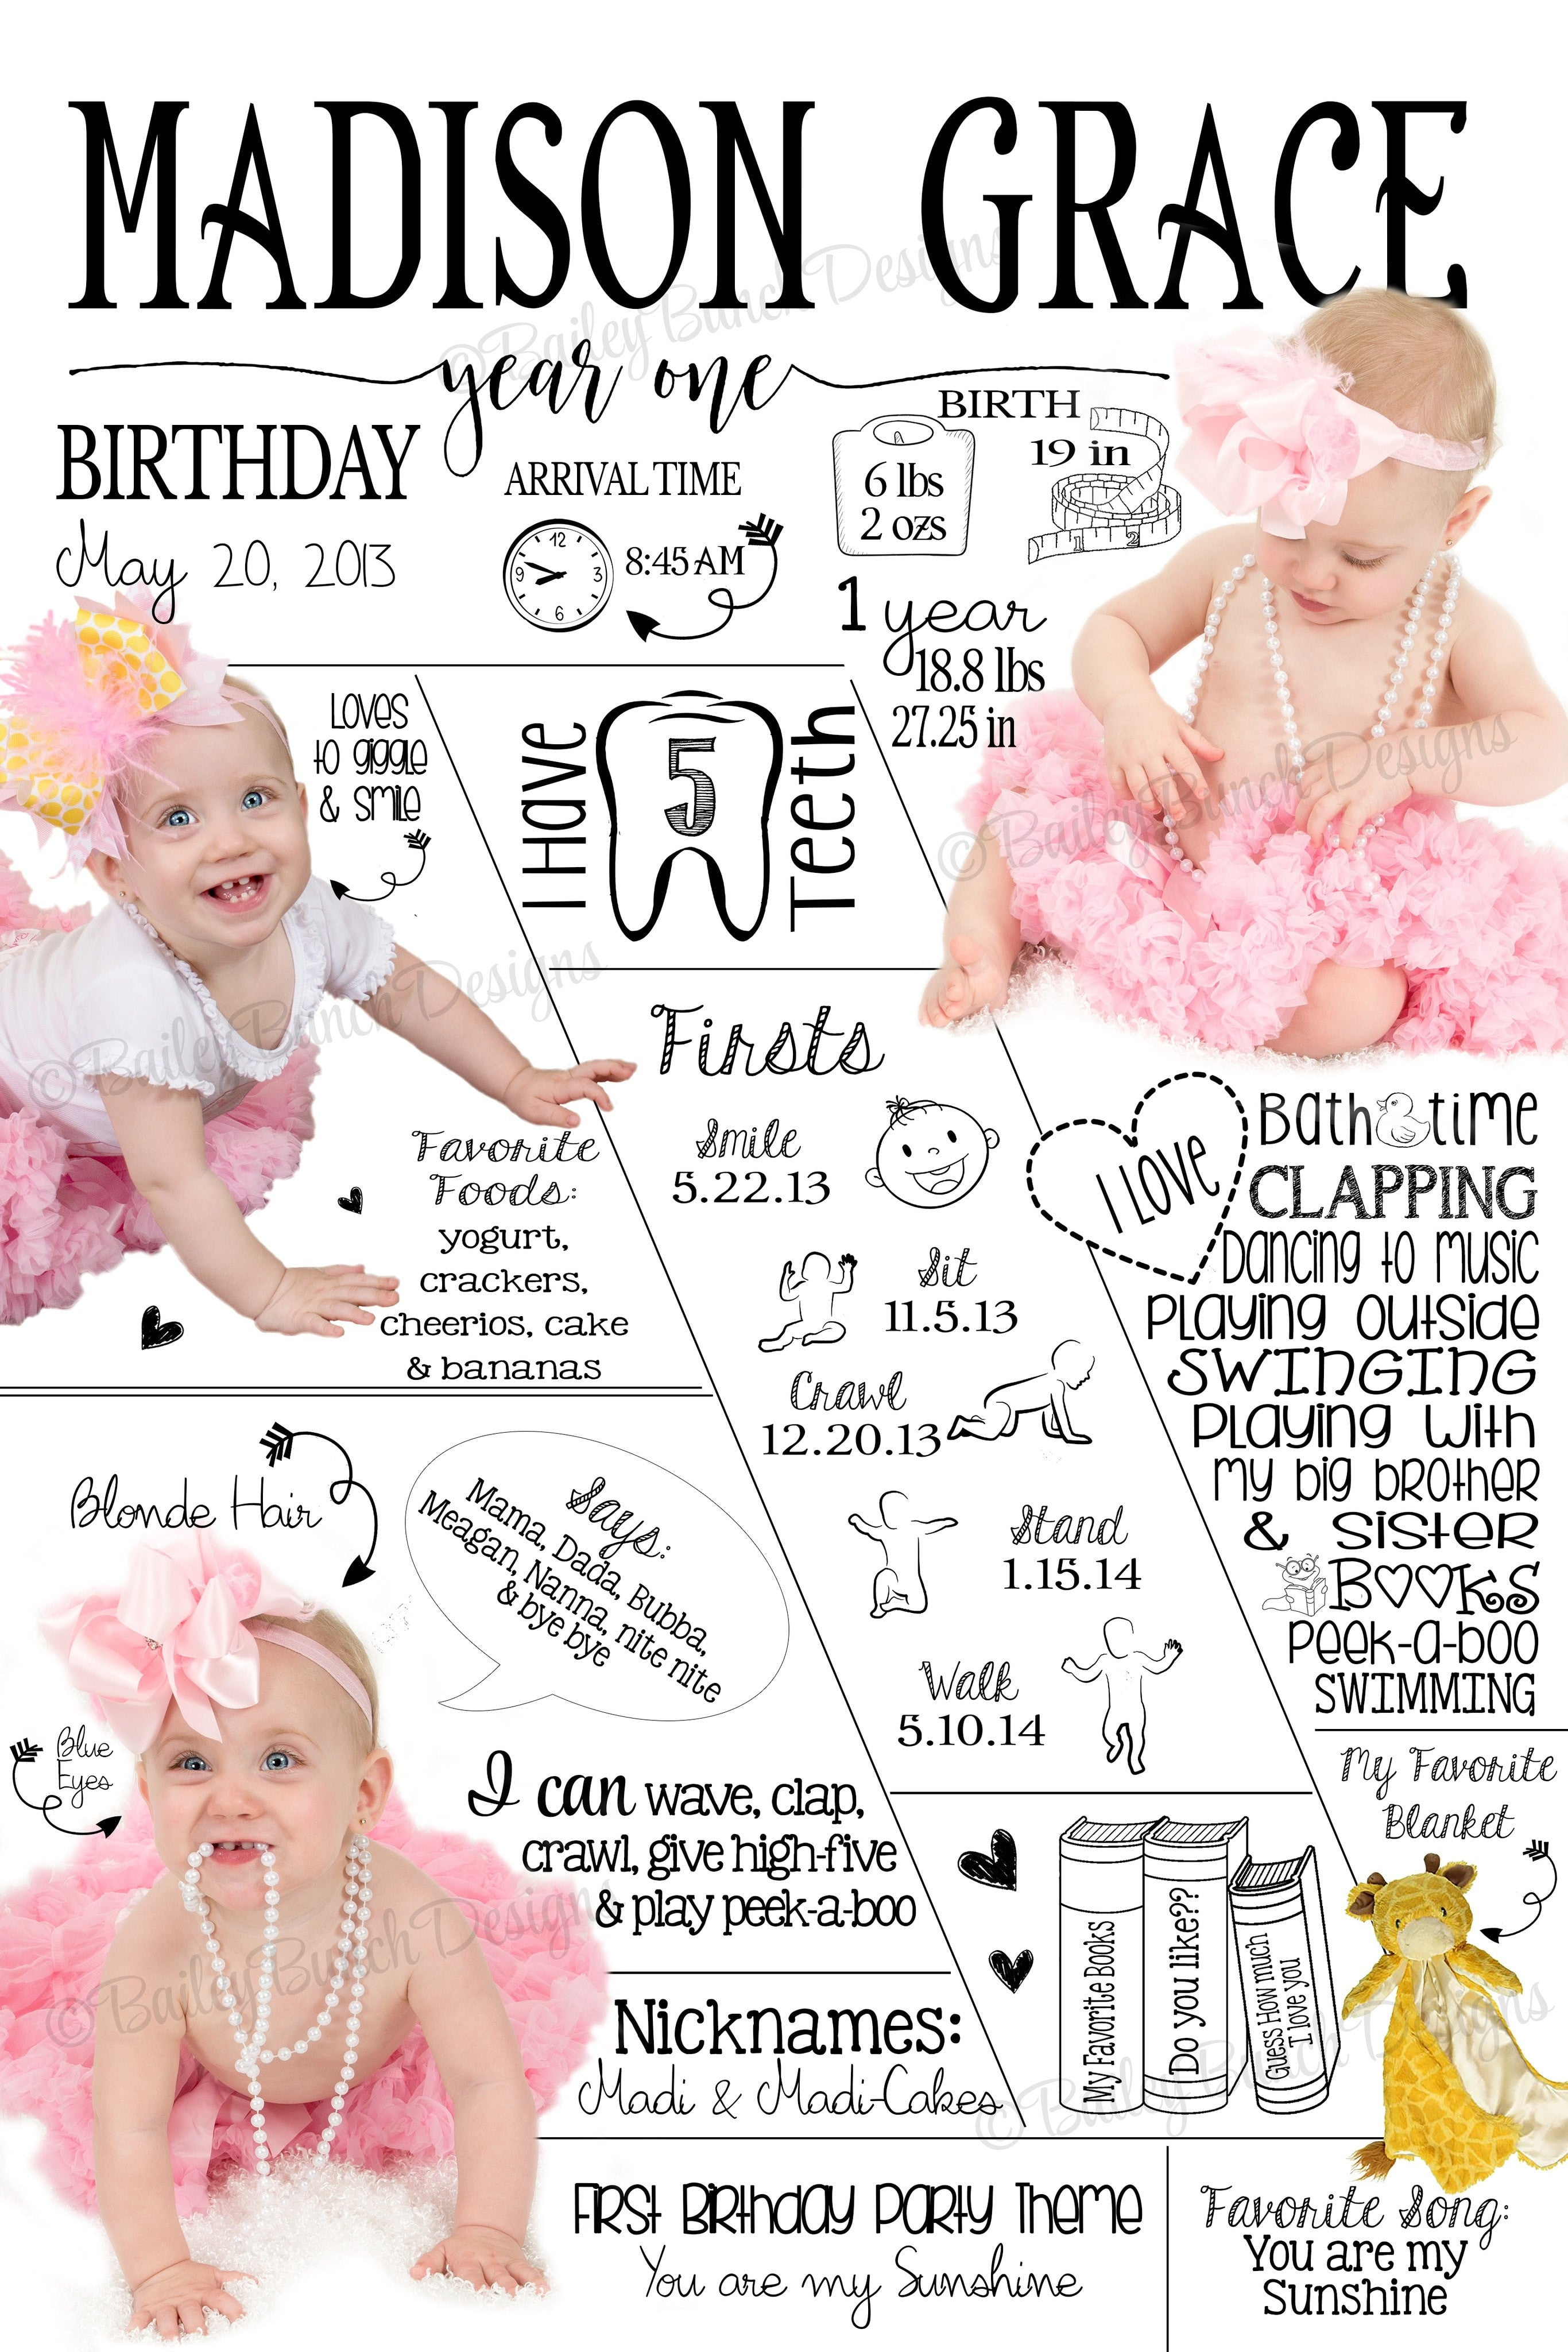 first birthday poster personalised first birthday poster il 570xn first birthday poster lucky. Black Bedroom Furniture Sets. Home Design Ideas